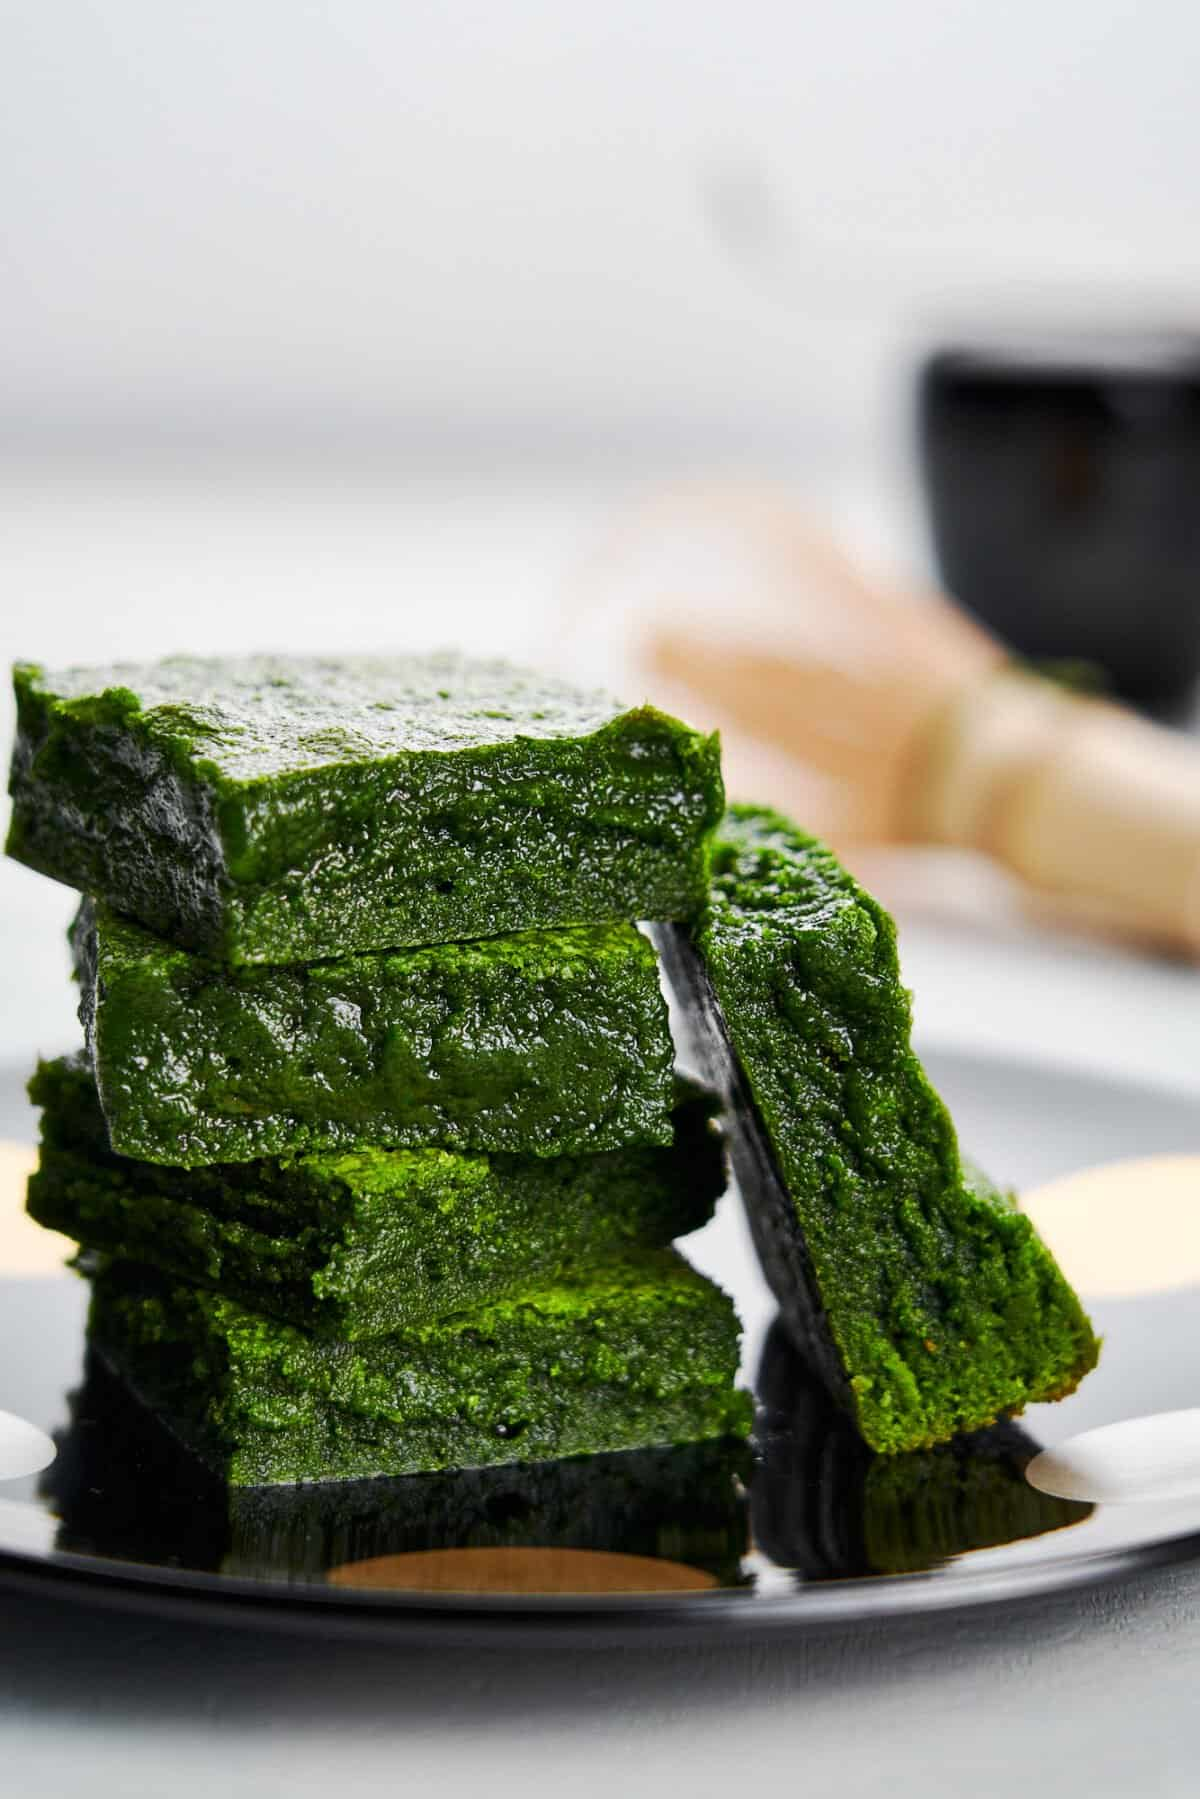 These easy green tea brownies made from white chocolate and matcha are crisp on the outside and fudgy on the inside. Their vibrant green color makes them perfect for holiday baking.